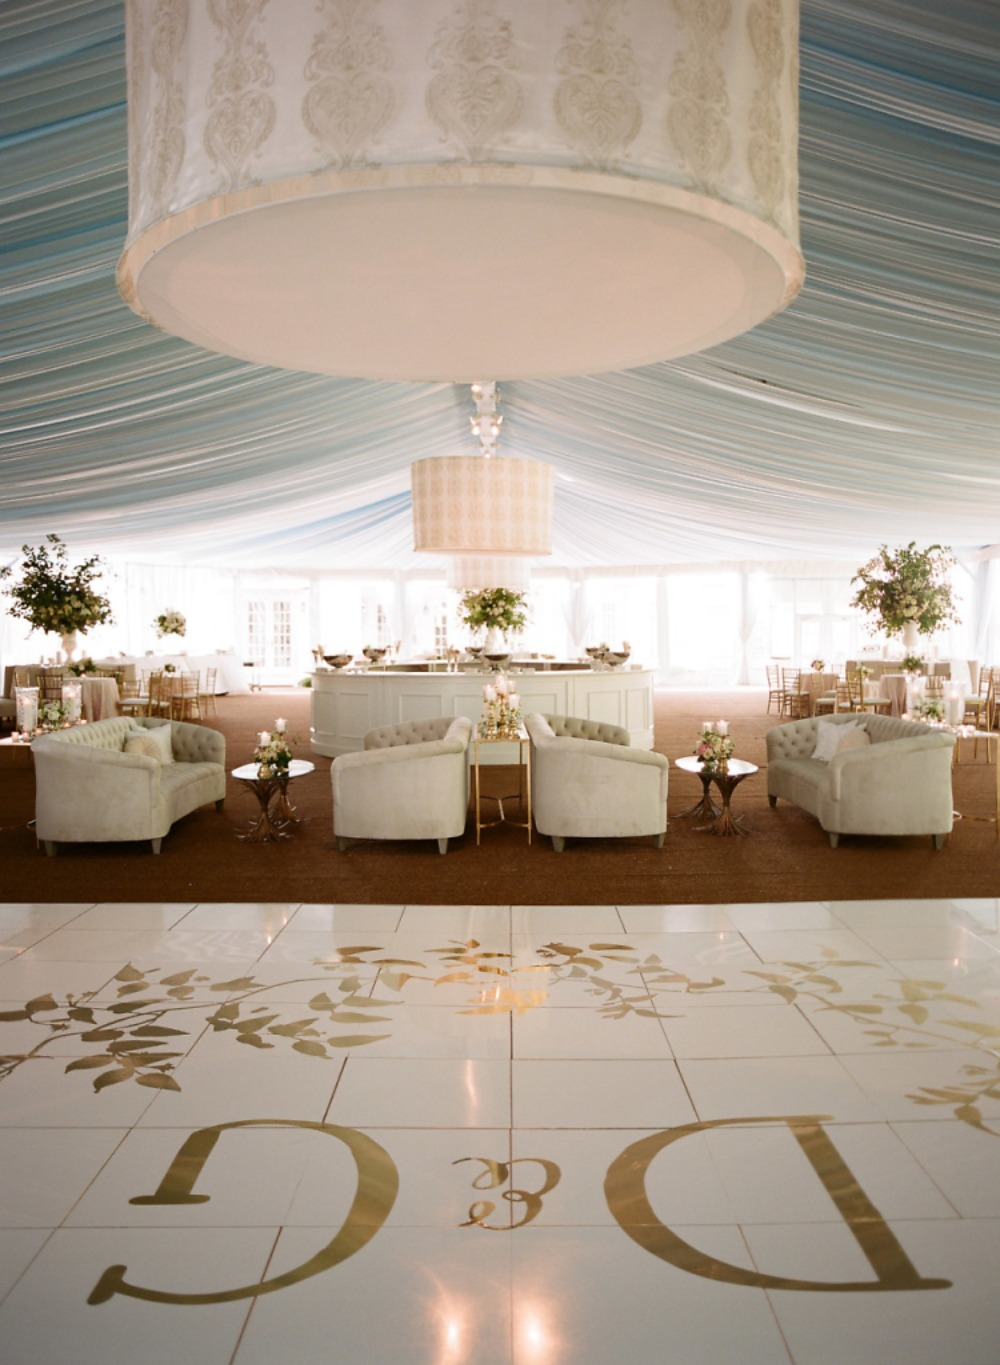 monogrammed dance floor and wedding lounge